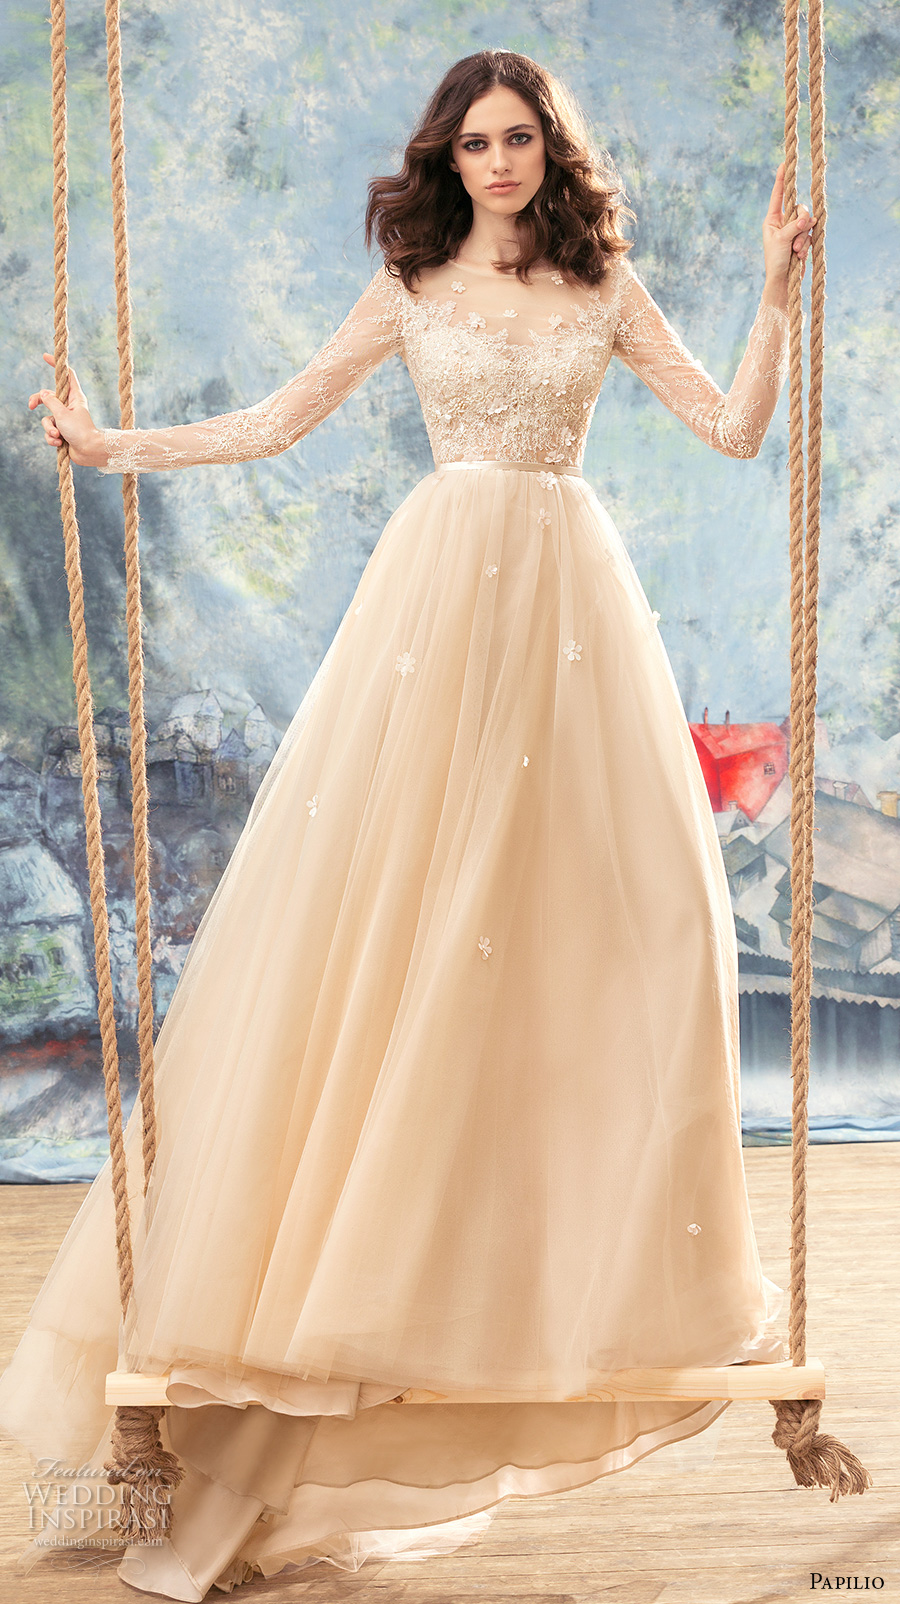 papilio 2017 bridal long sleeves sheer bateau sweetheart neckline heavily embellished bodice ivory color romantic a  line wedding dress sheer back chapel train (crane) mv